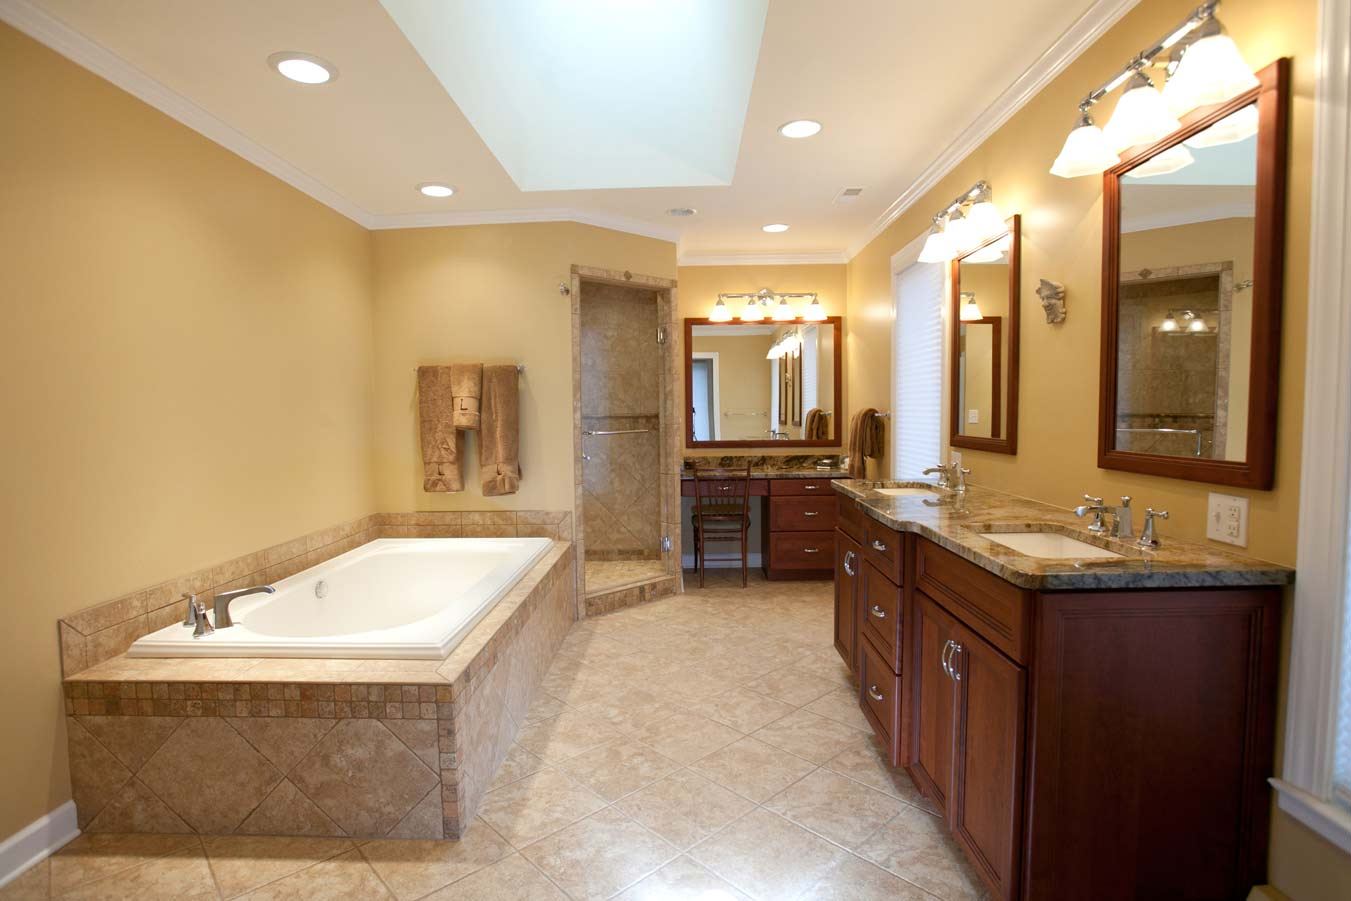 25 best bathroom remodeling ideas and inspiration for Bathroom bathtub remodel ideas